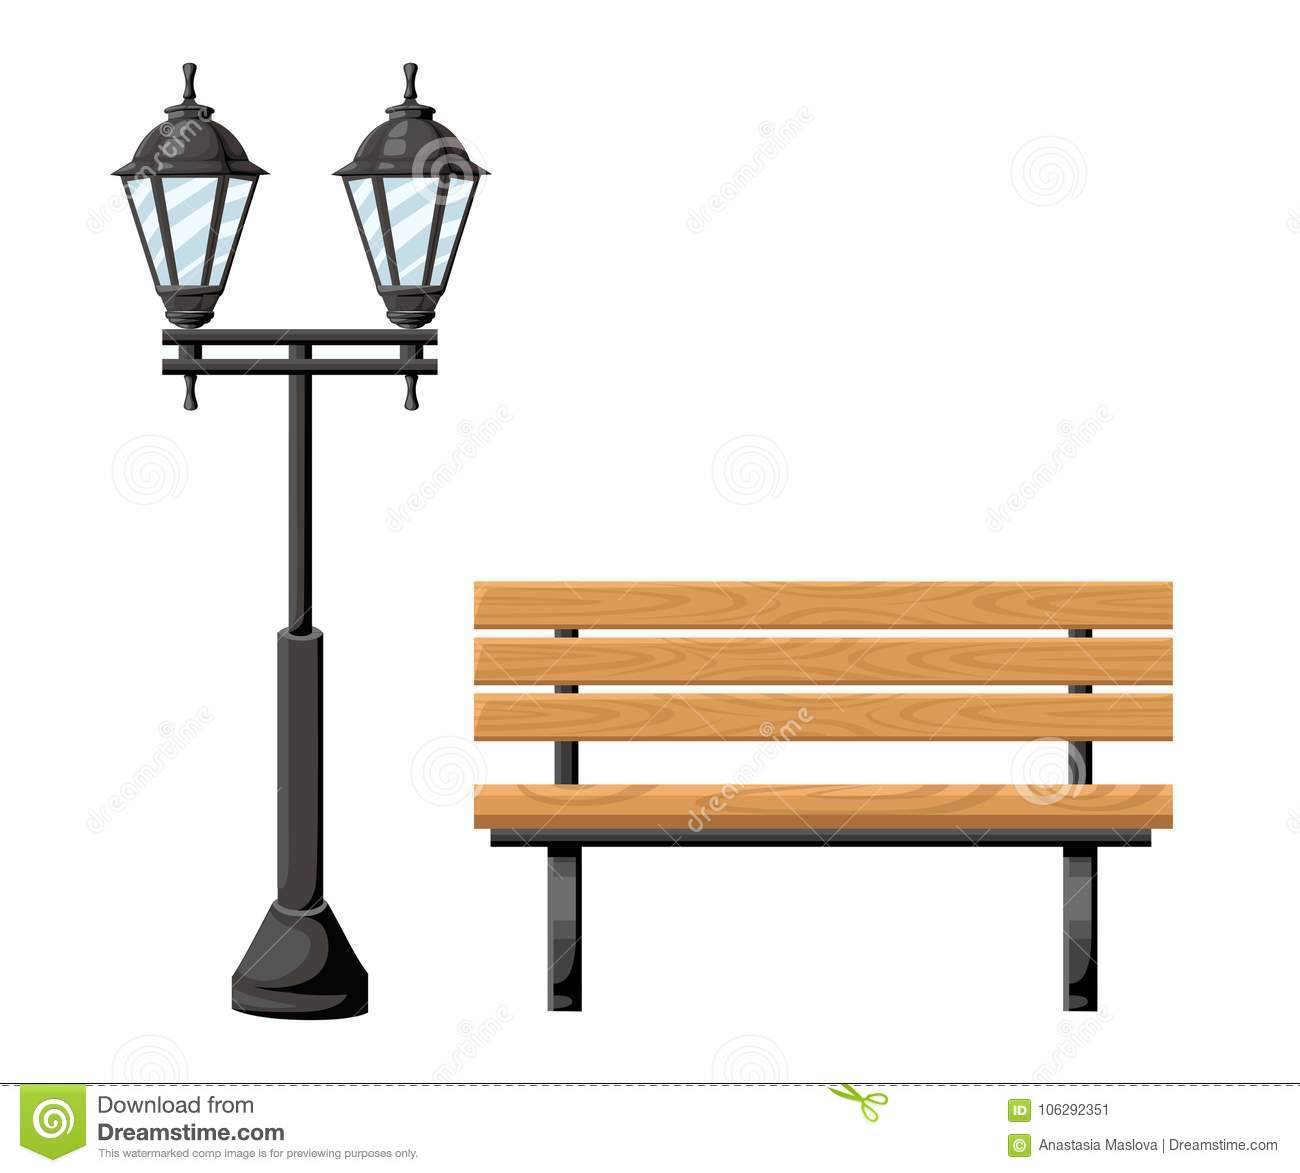 Outdoor wood bench and metal street light front view object for park cottage and yard vector illustration isolated on white backgr